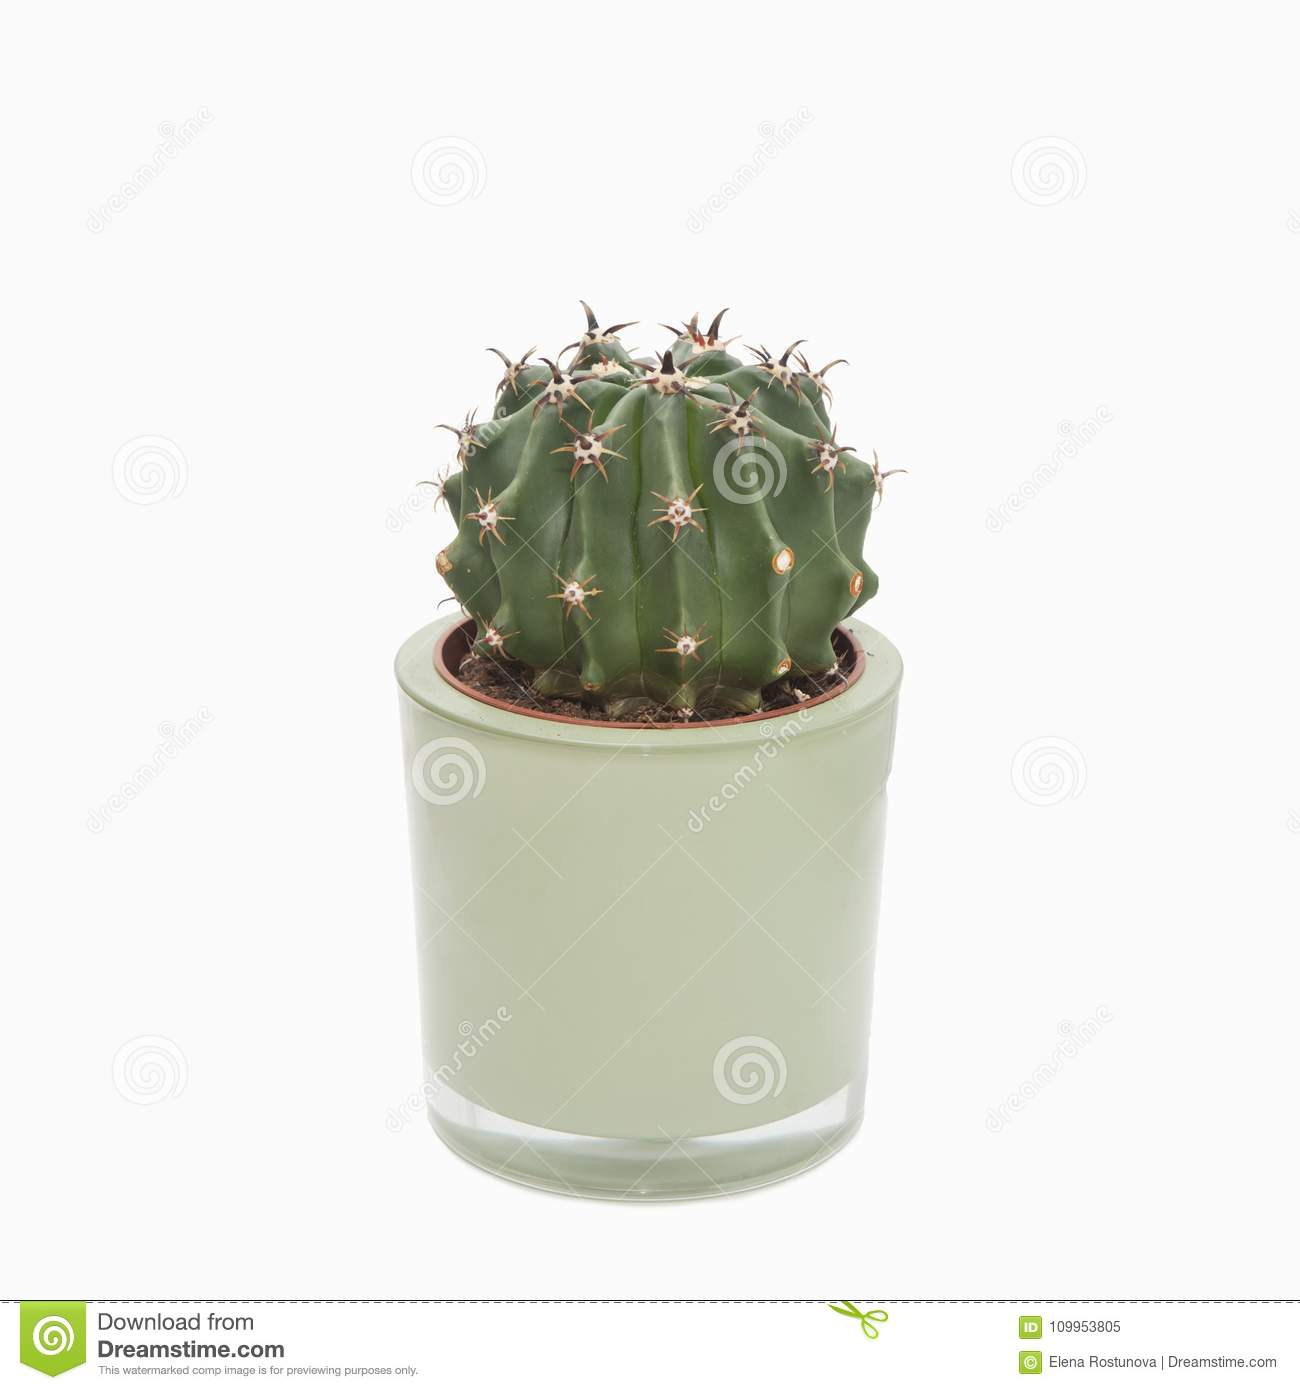 Cactus Planting Pots Cactus Plant In A Pot On A White Background Stock Image Image Of